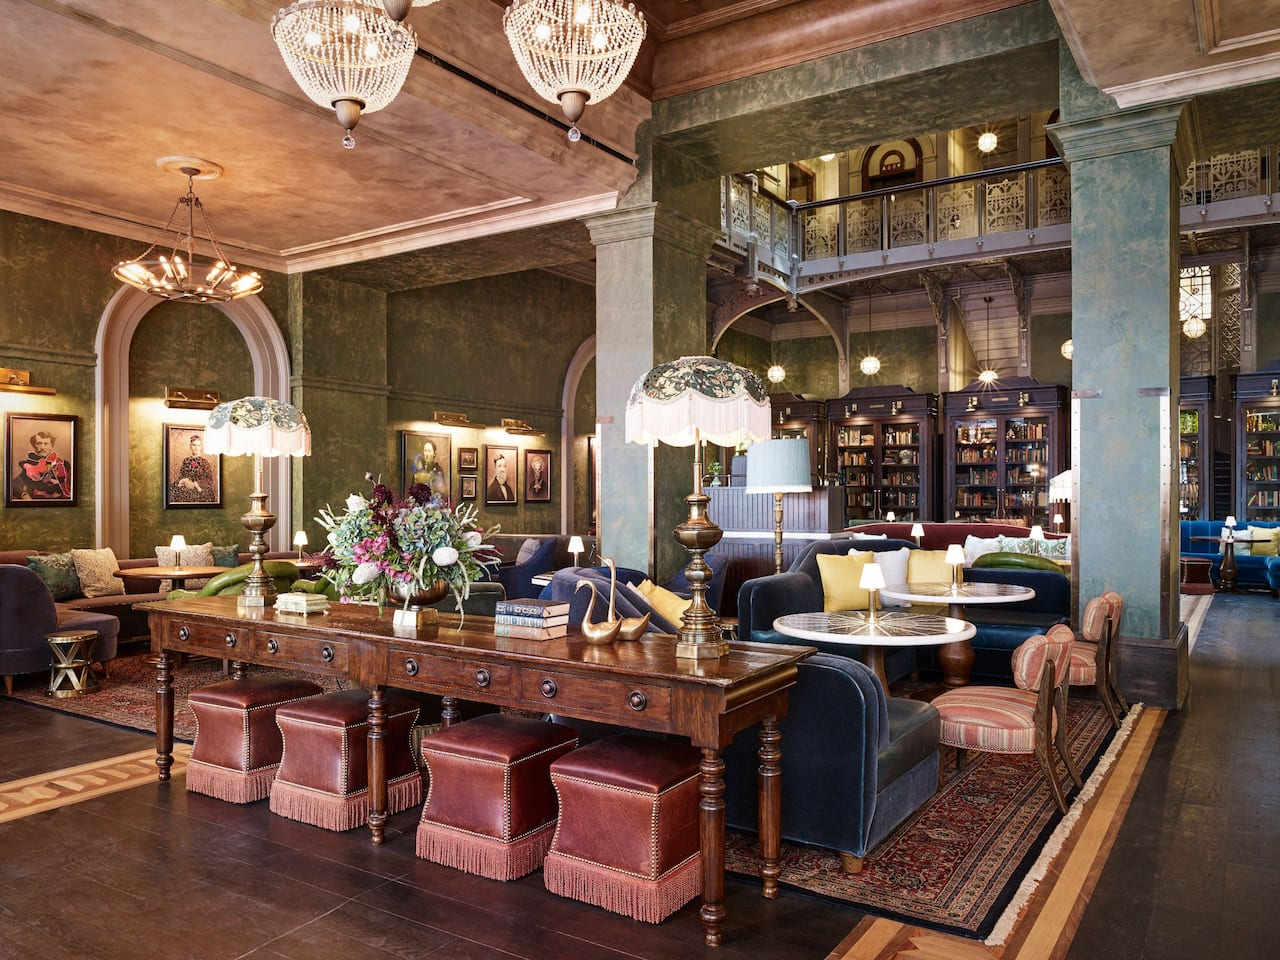 The Bar Room at Temple Court